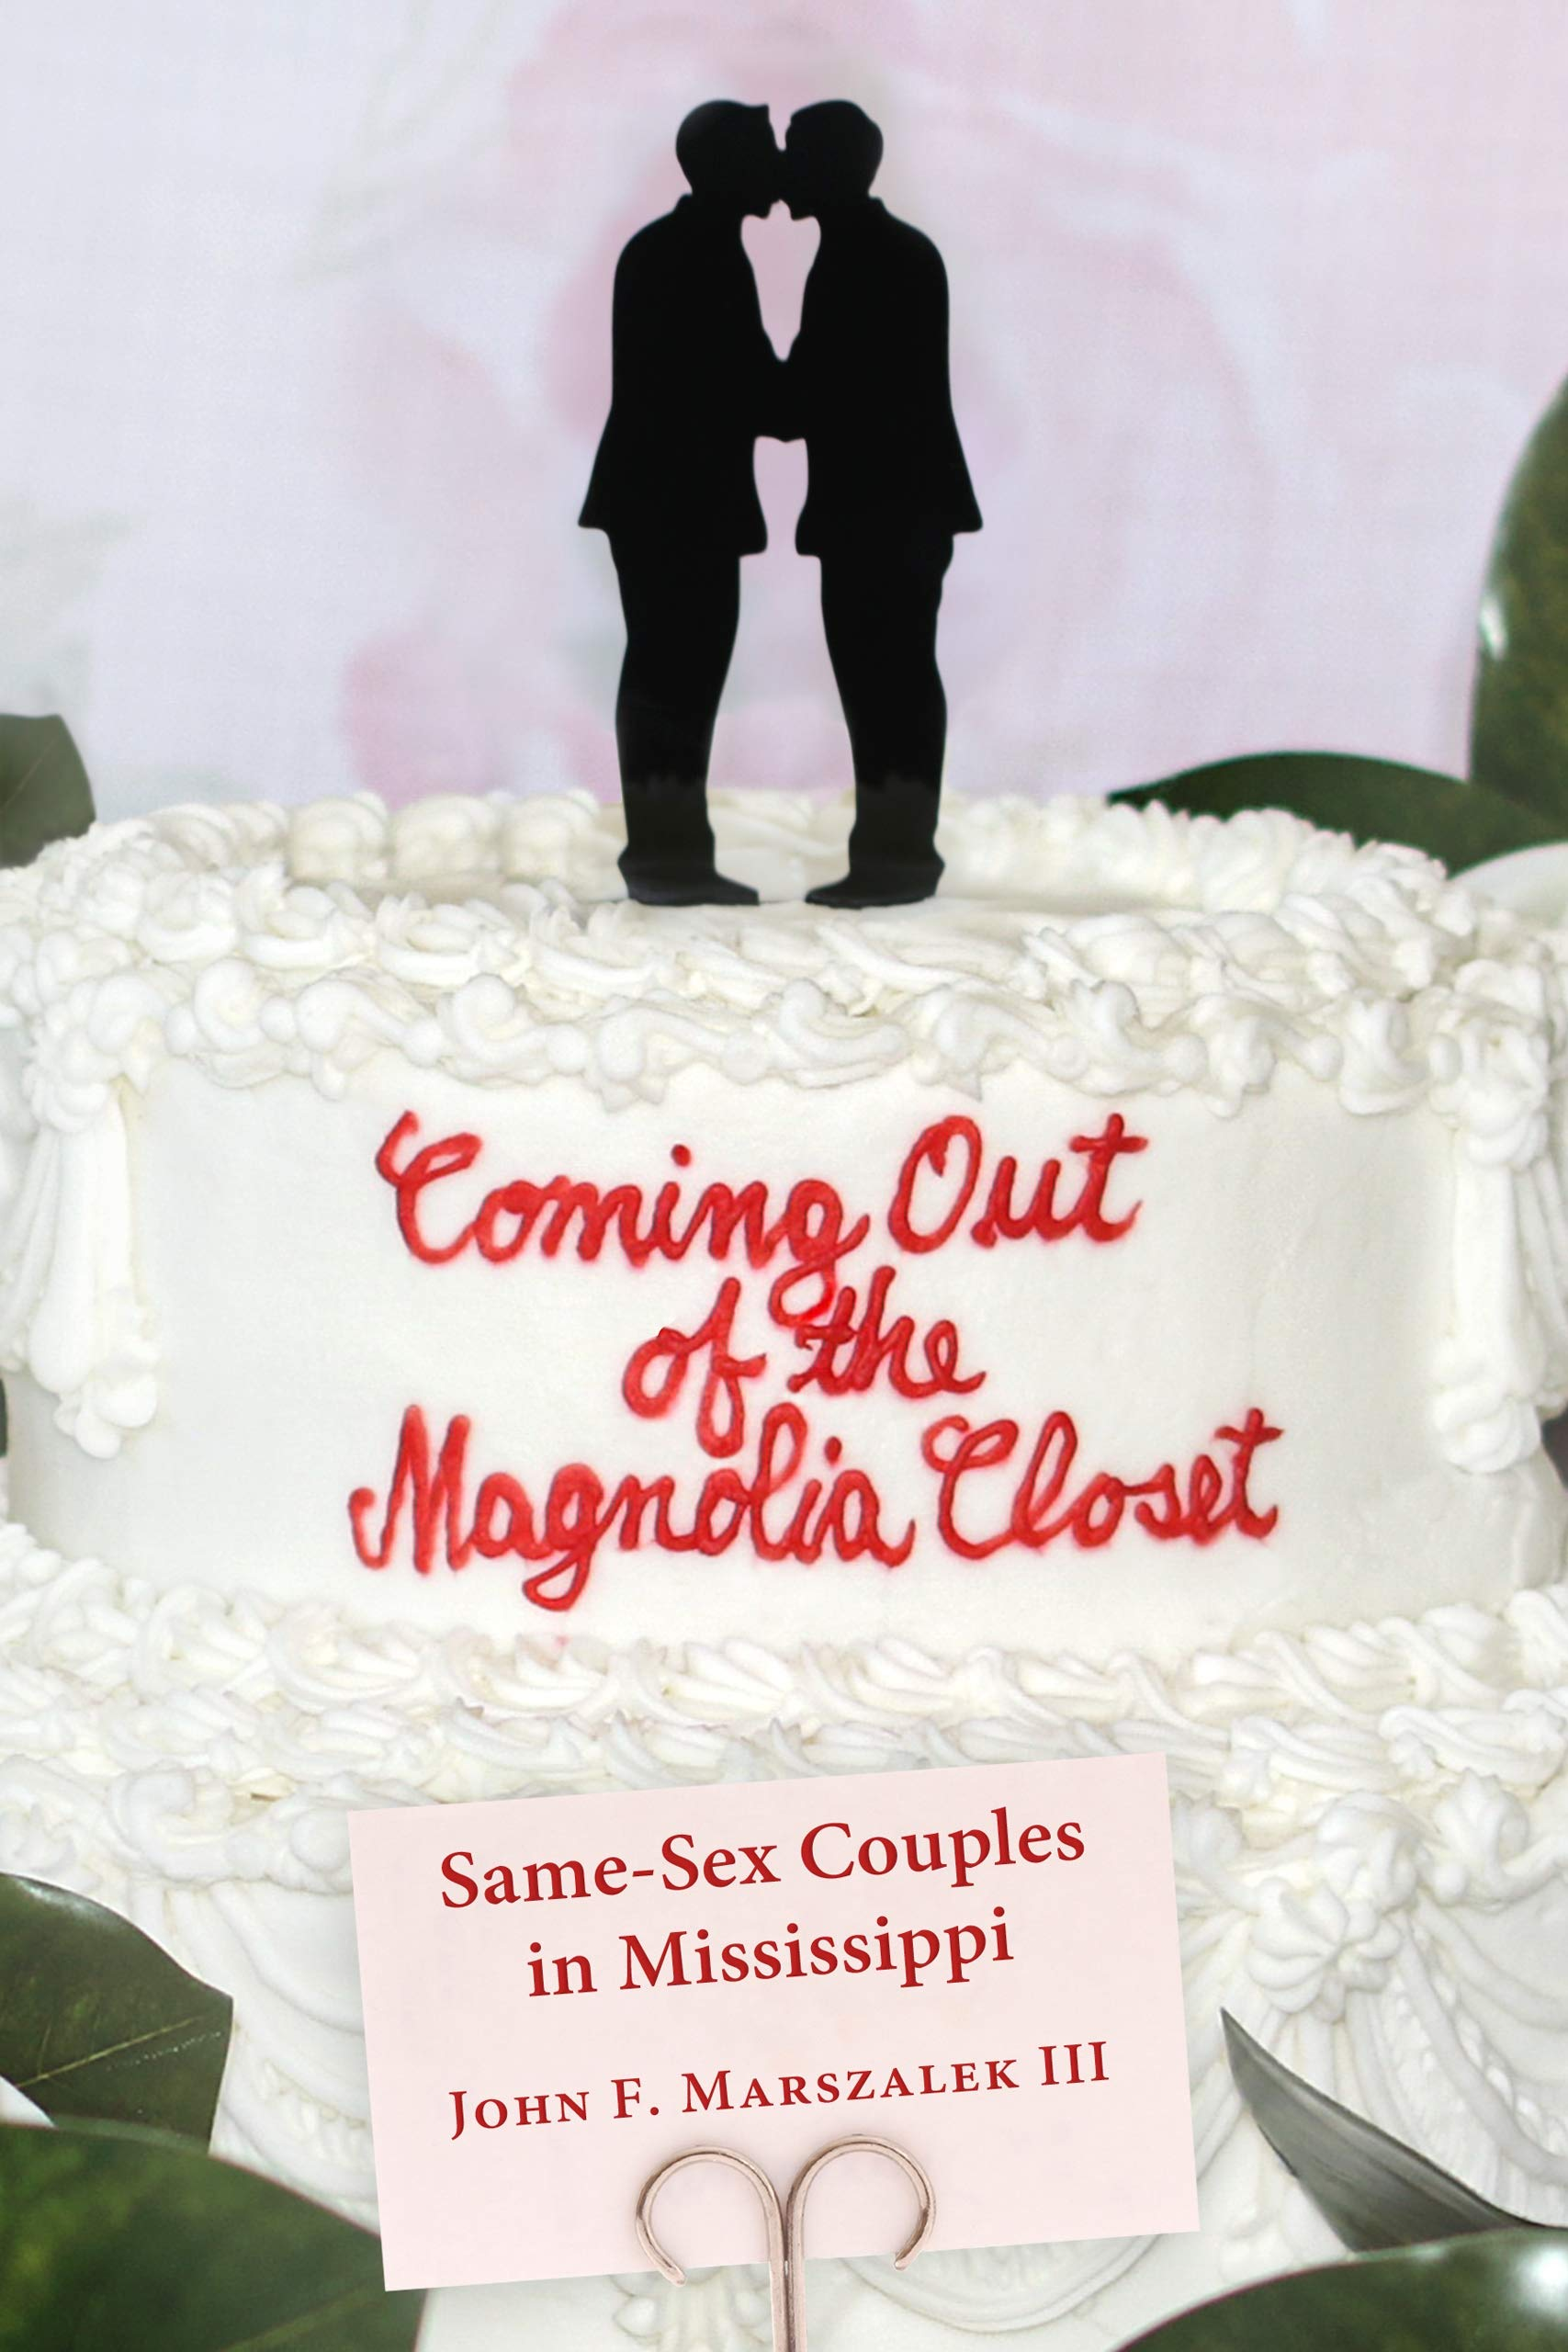 Coming Out of the Magnolia Closet: Same-Sex Couples in Mississippi by John F. Marszalek III